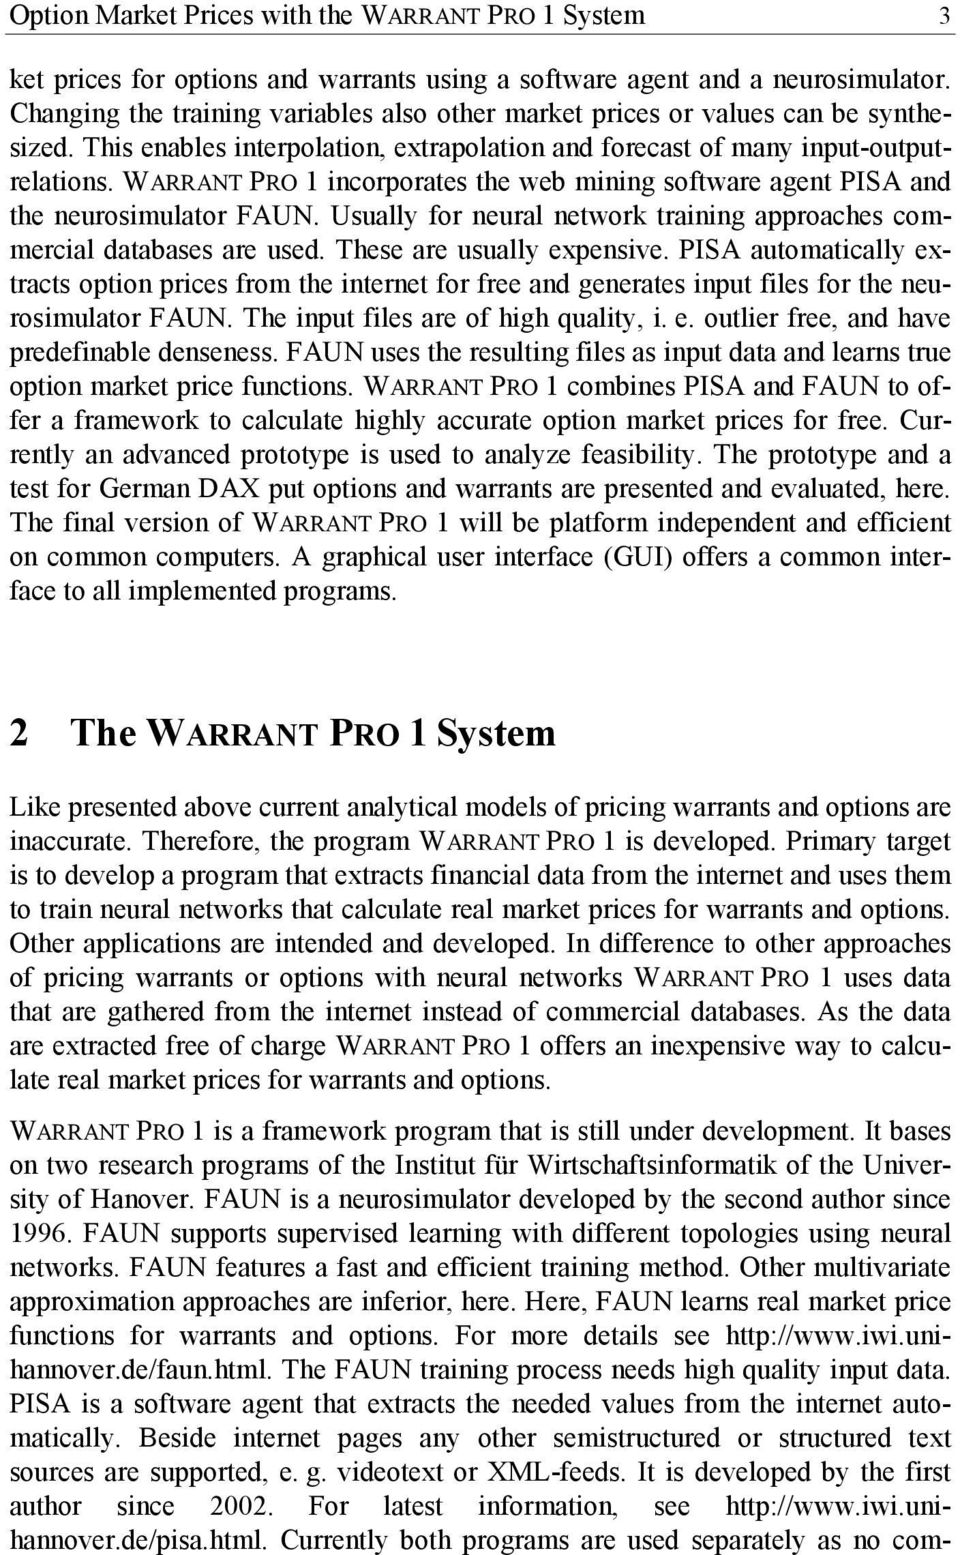 WARRANT PRO 1 incorporates the web mining software agent PISA and the neurosimulator FAUN. Usually for neural network training approaches commercial databases are used. These are usually expensive.